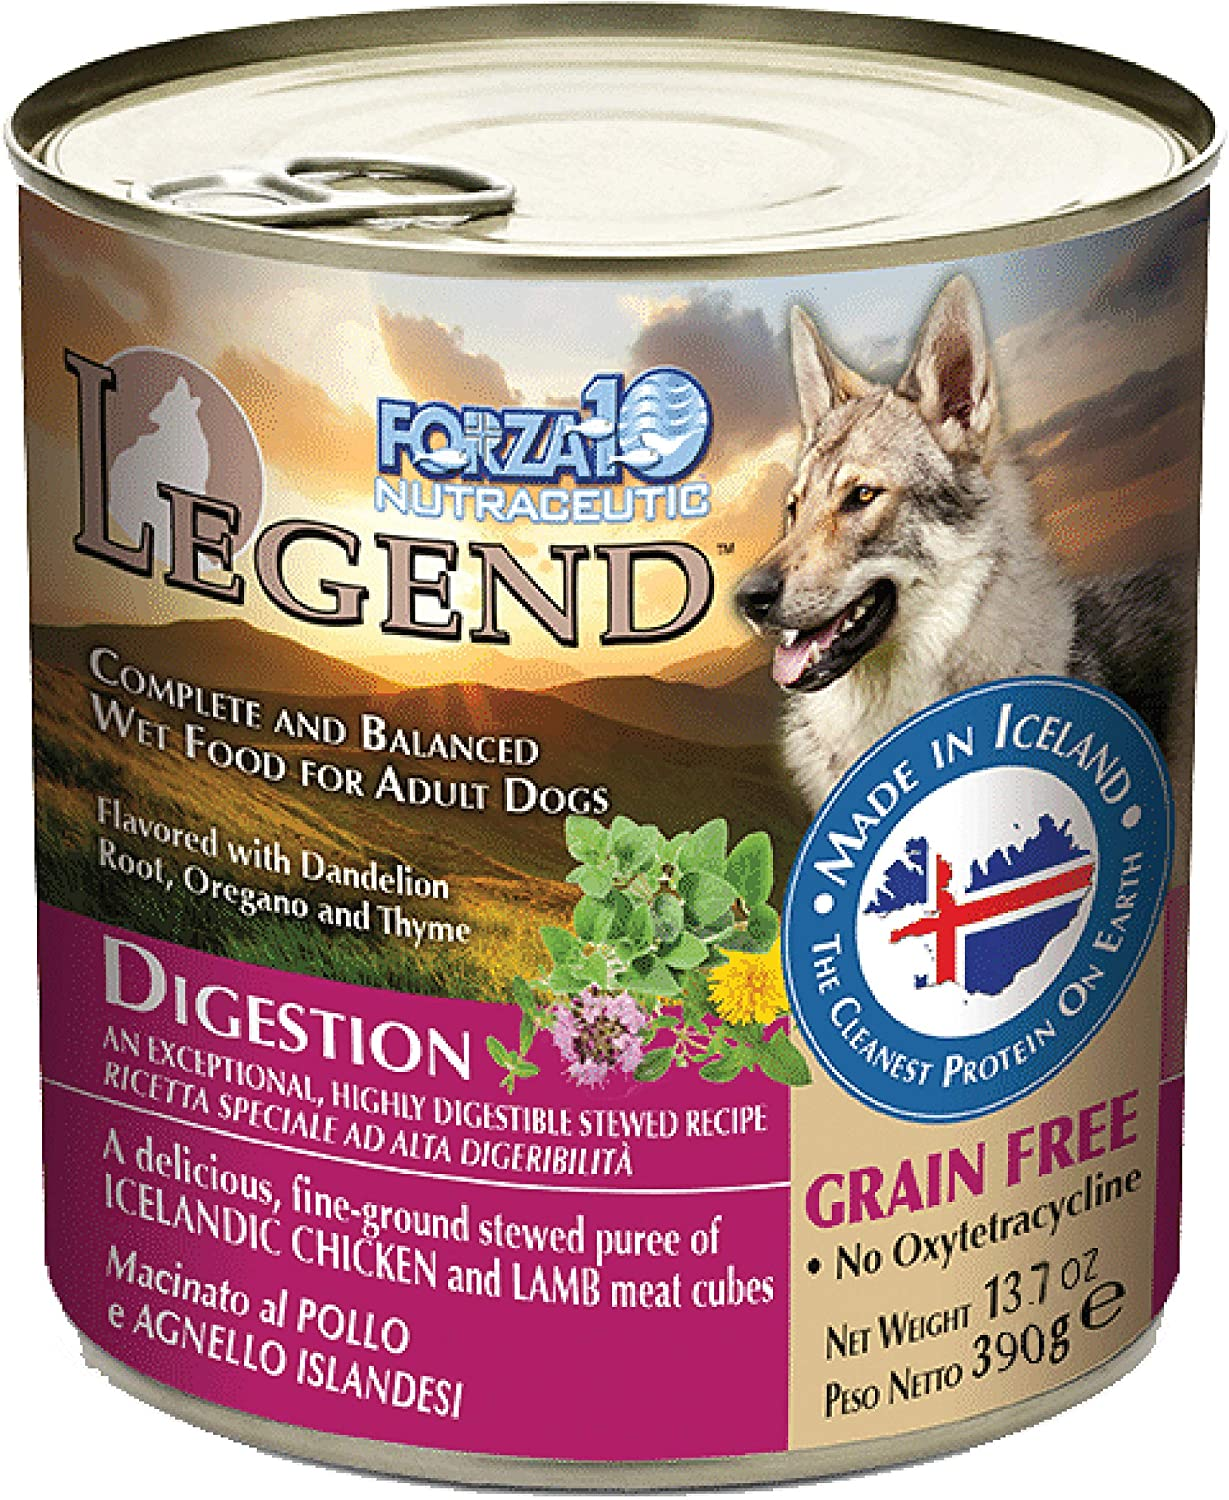 Forza10 Legend Digestion Wet Dog Food, Icelandic Chicken and Lamb Meat Cubes, Grain-Free Canned Dog Food for Stomach Sensitivity, 11 Ounce Cans, 12 Pack Case